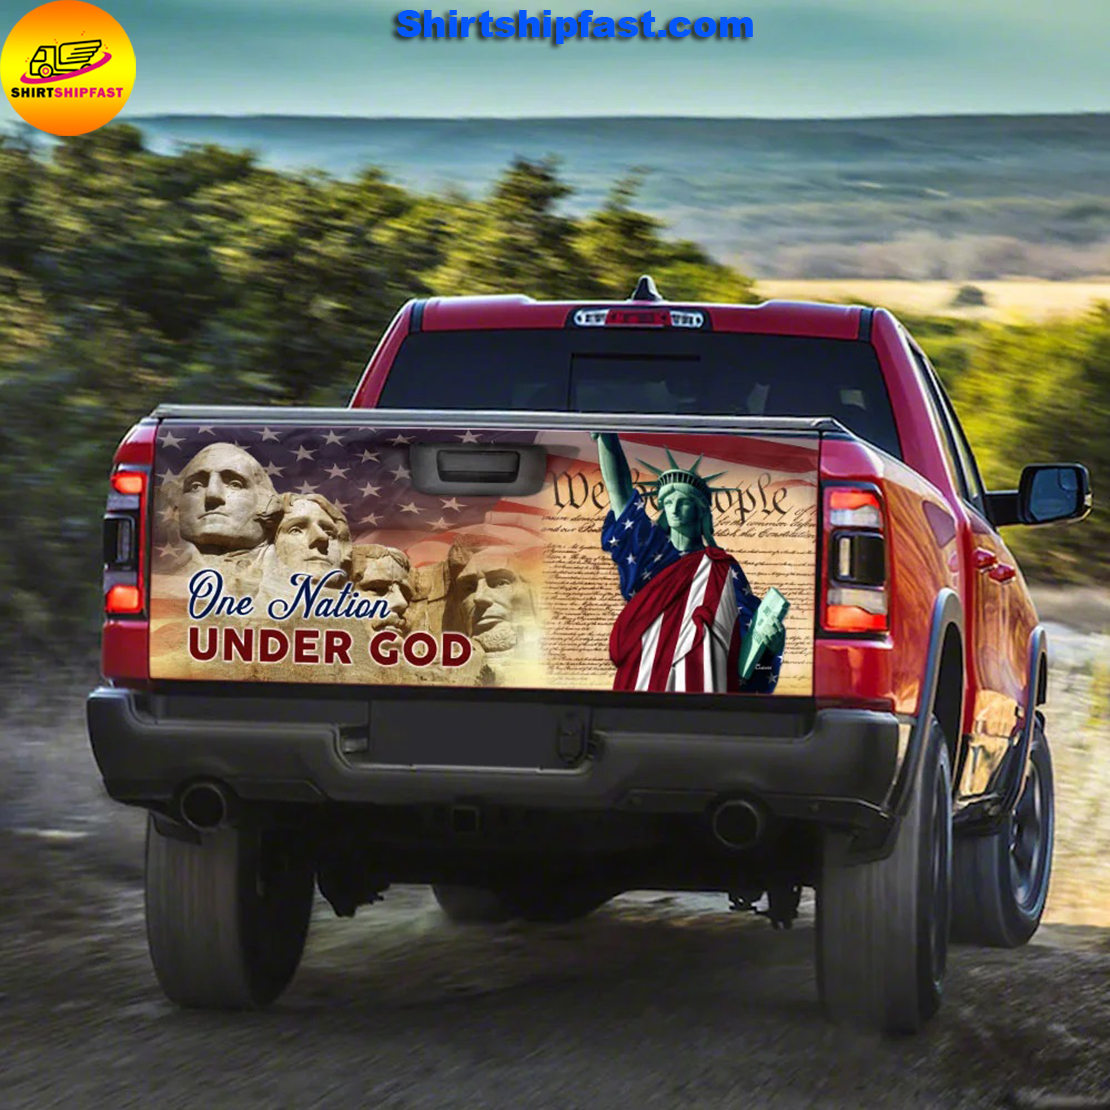 One nation under god American pride truck tailgate decal sticker wrap - Picture 2